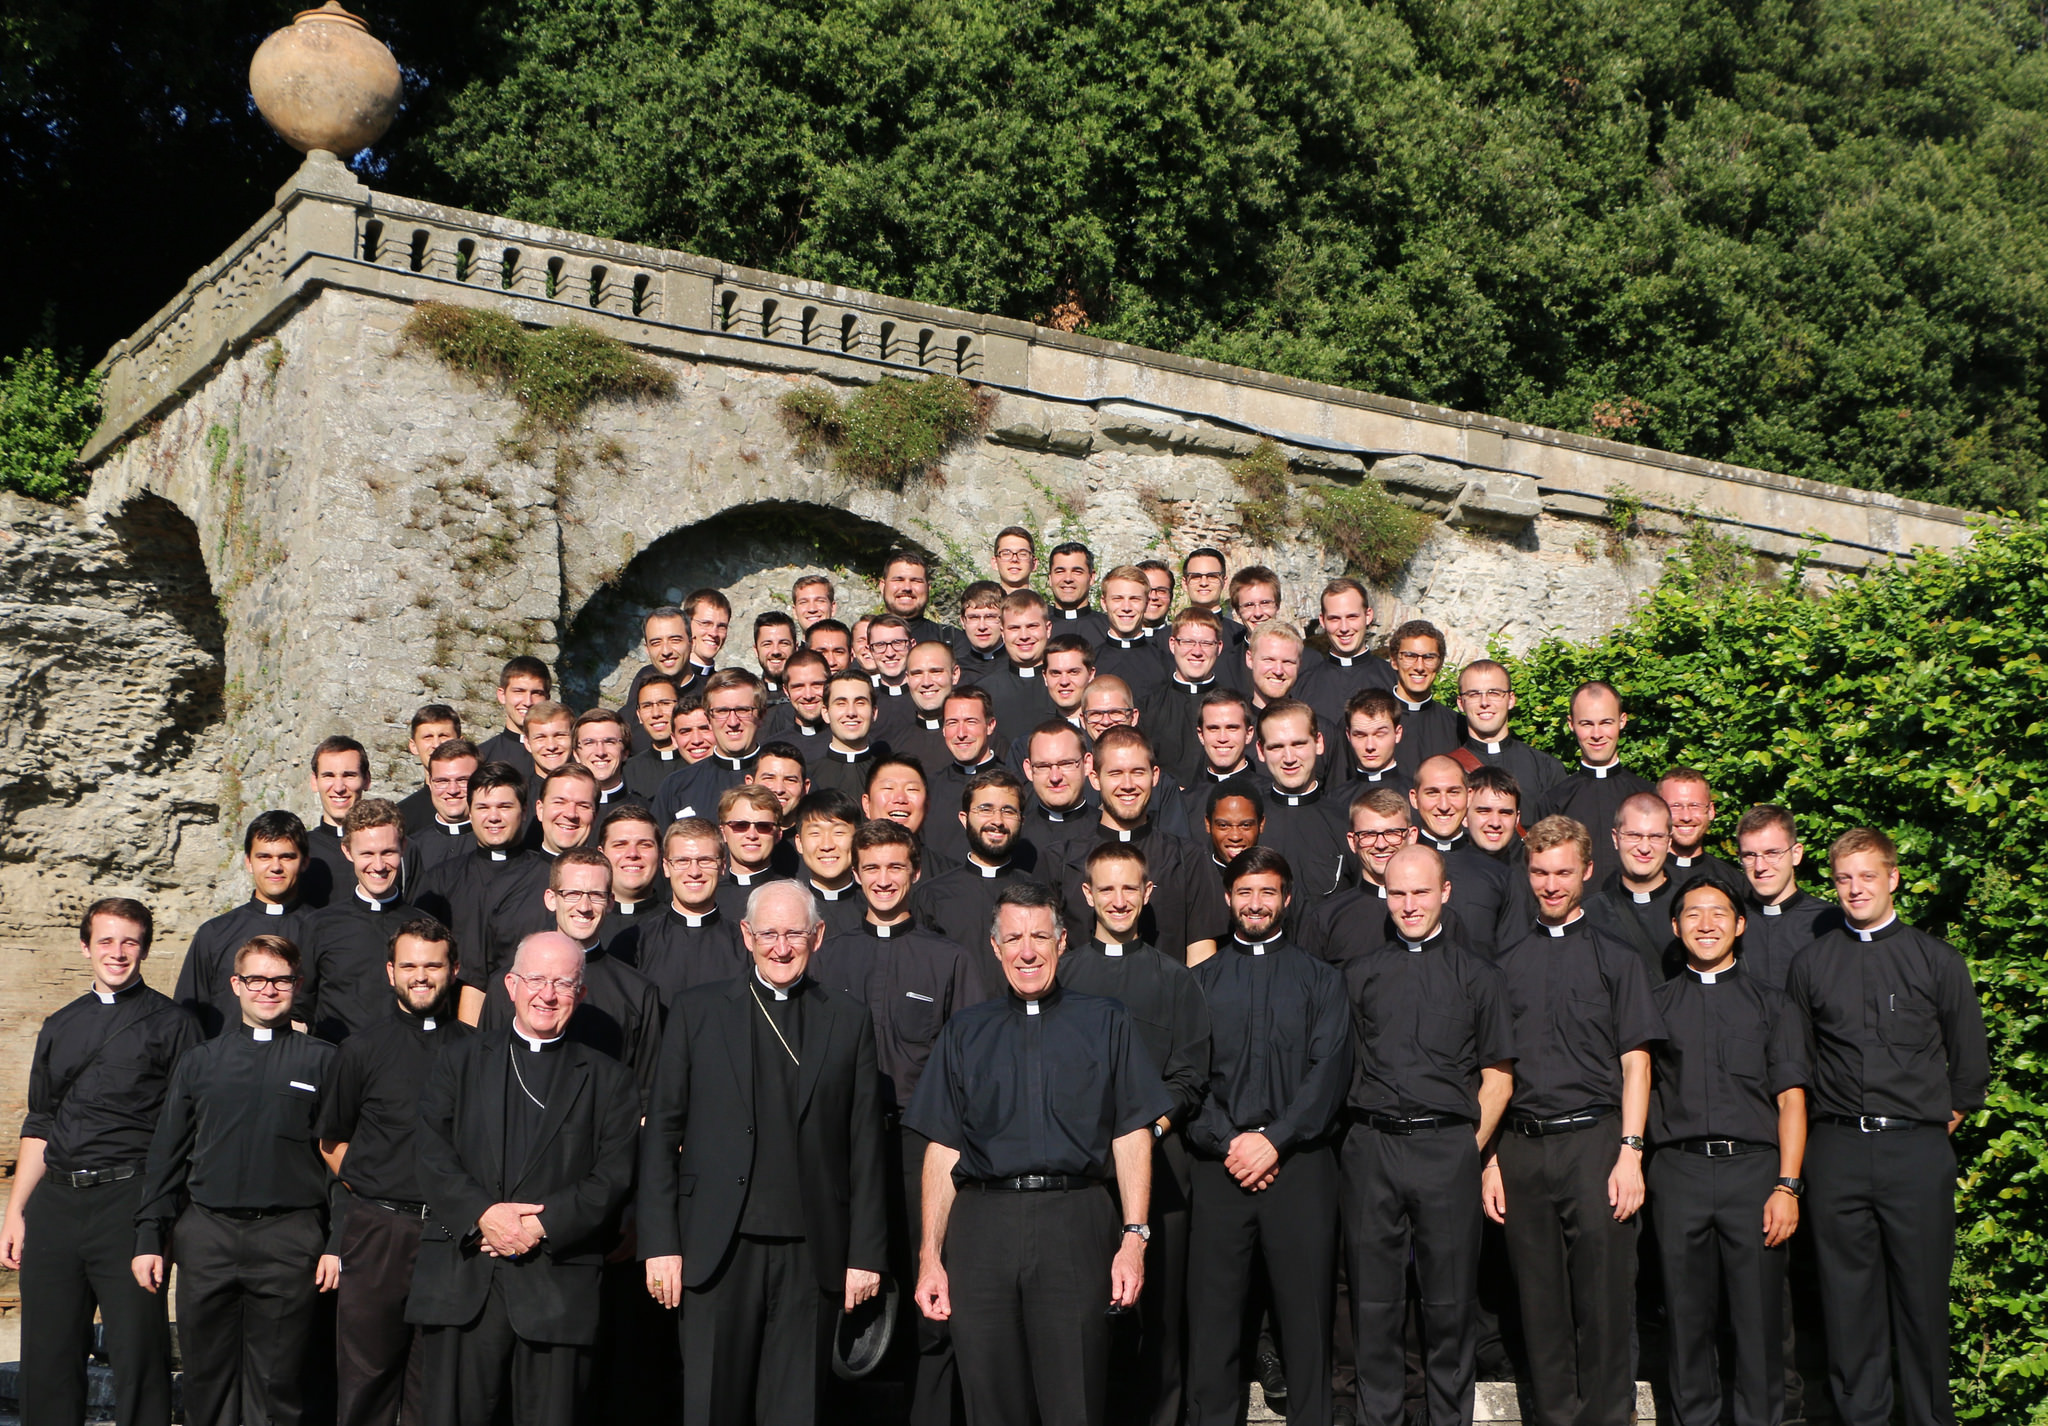 The Class of 2019 poses for a photo during their tour of the papal gardens at Castel Gandolfo.